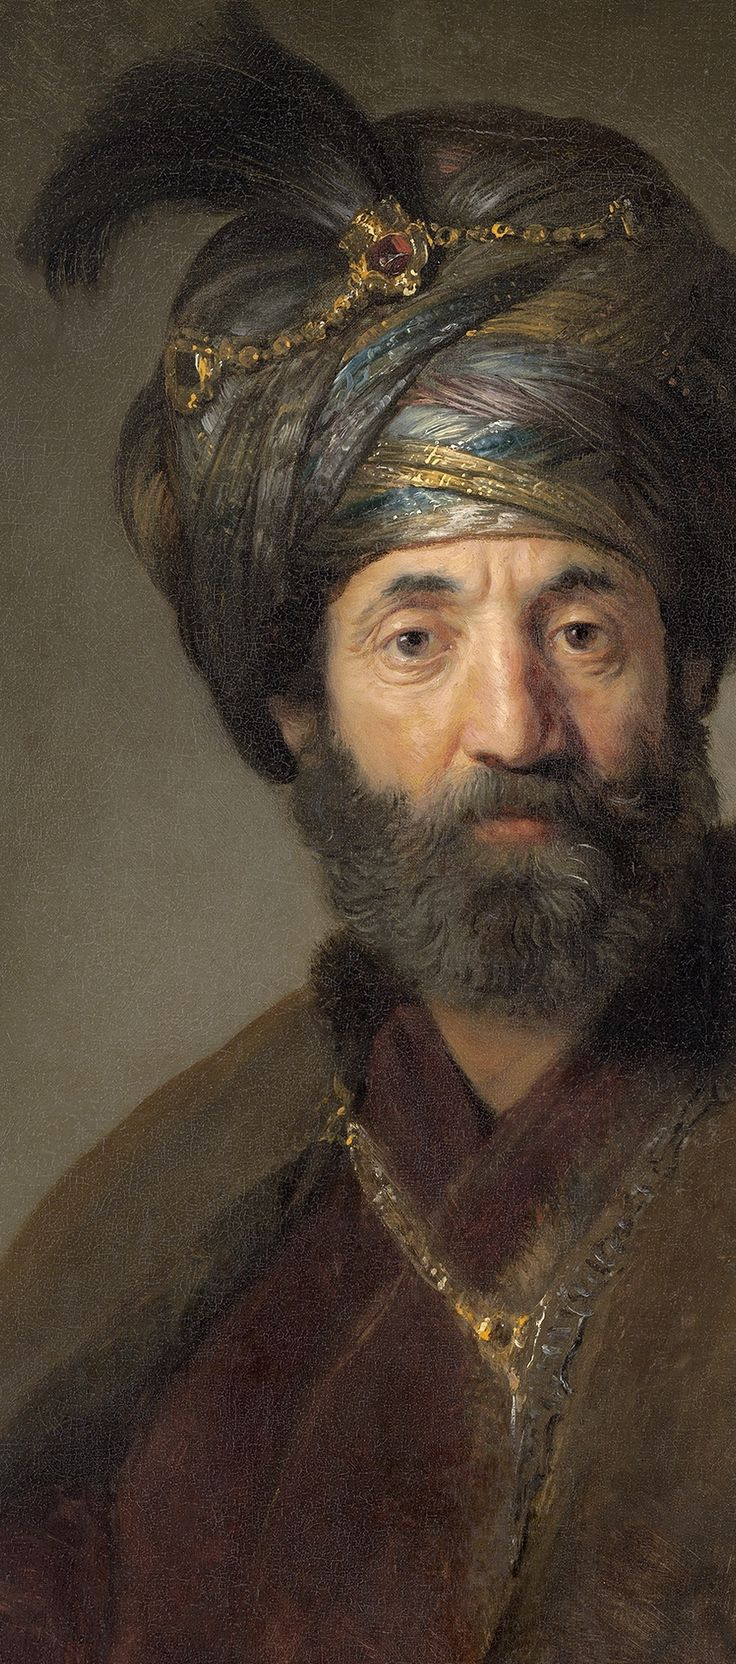 Rembrandt van Rijn and Workshop (Probably Govaert Flinck) - Man in Oriental Costume